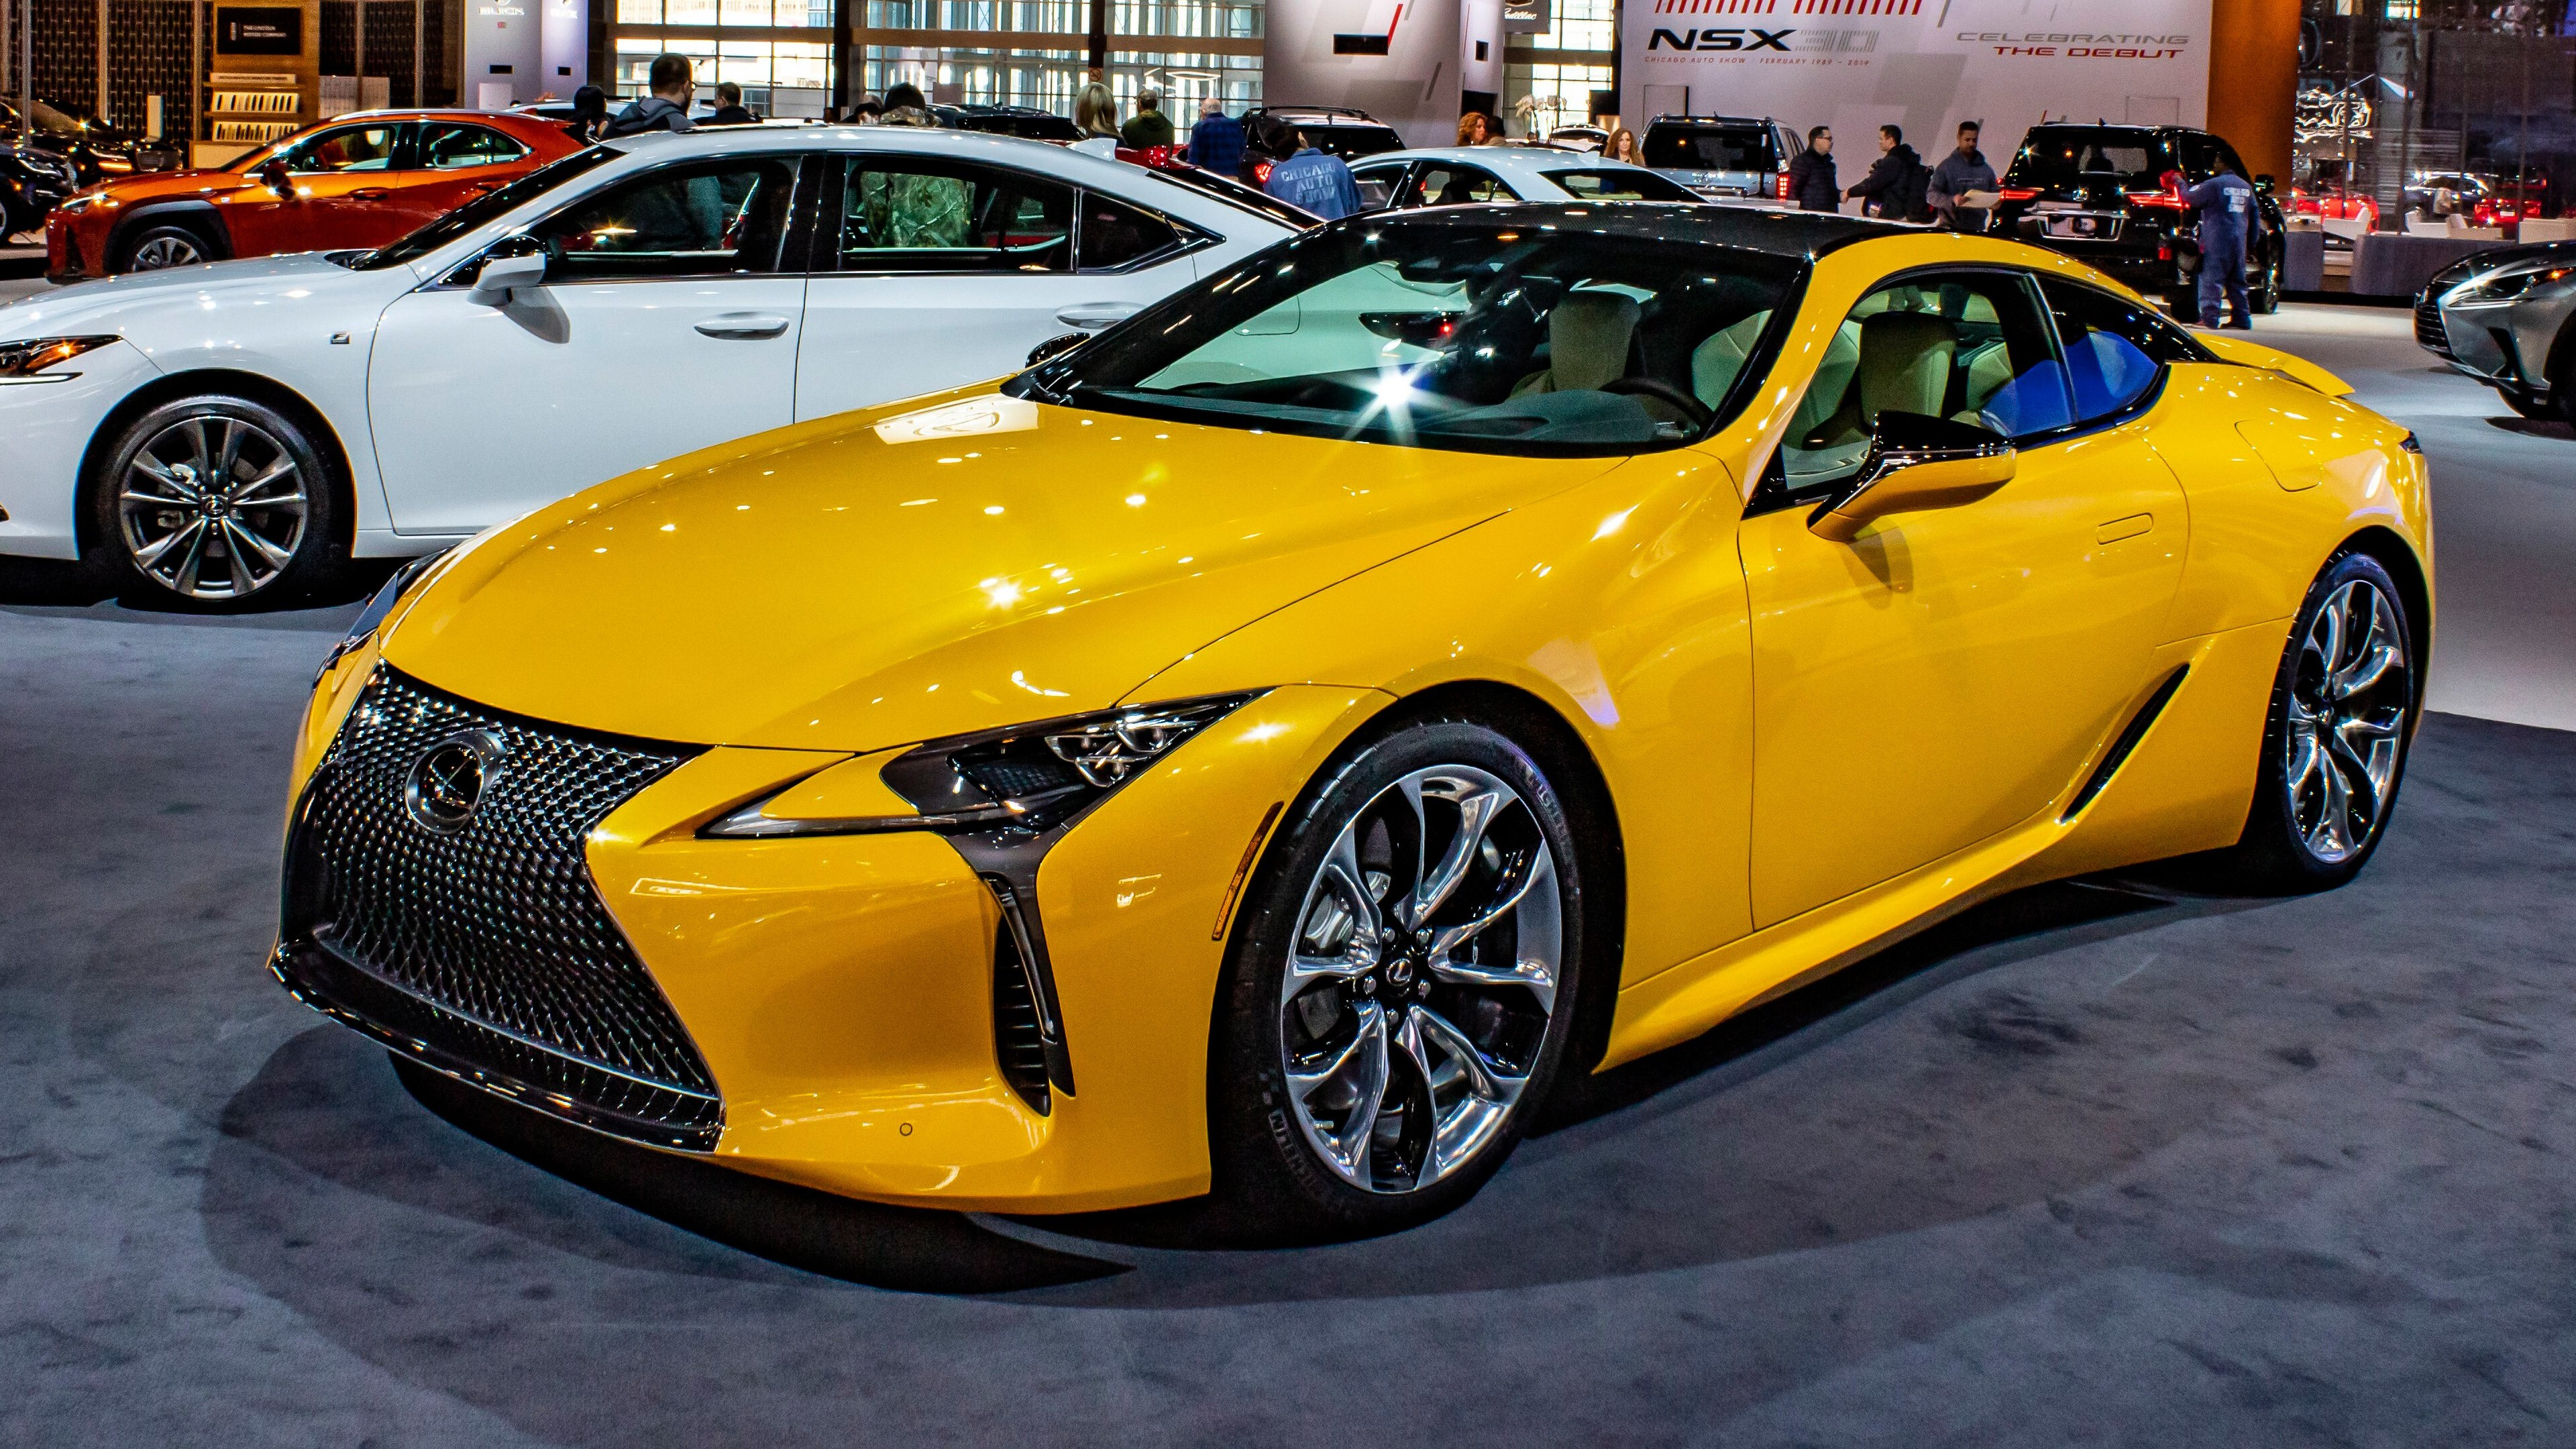 2019 Lexus Lc 500 Inspira Superb Yellow Car 4k Wallpaper Hd Wallpapers